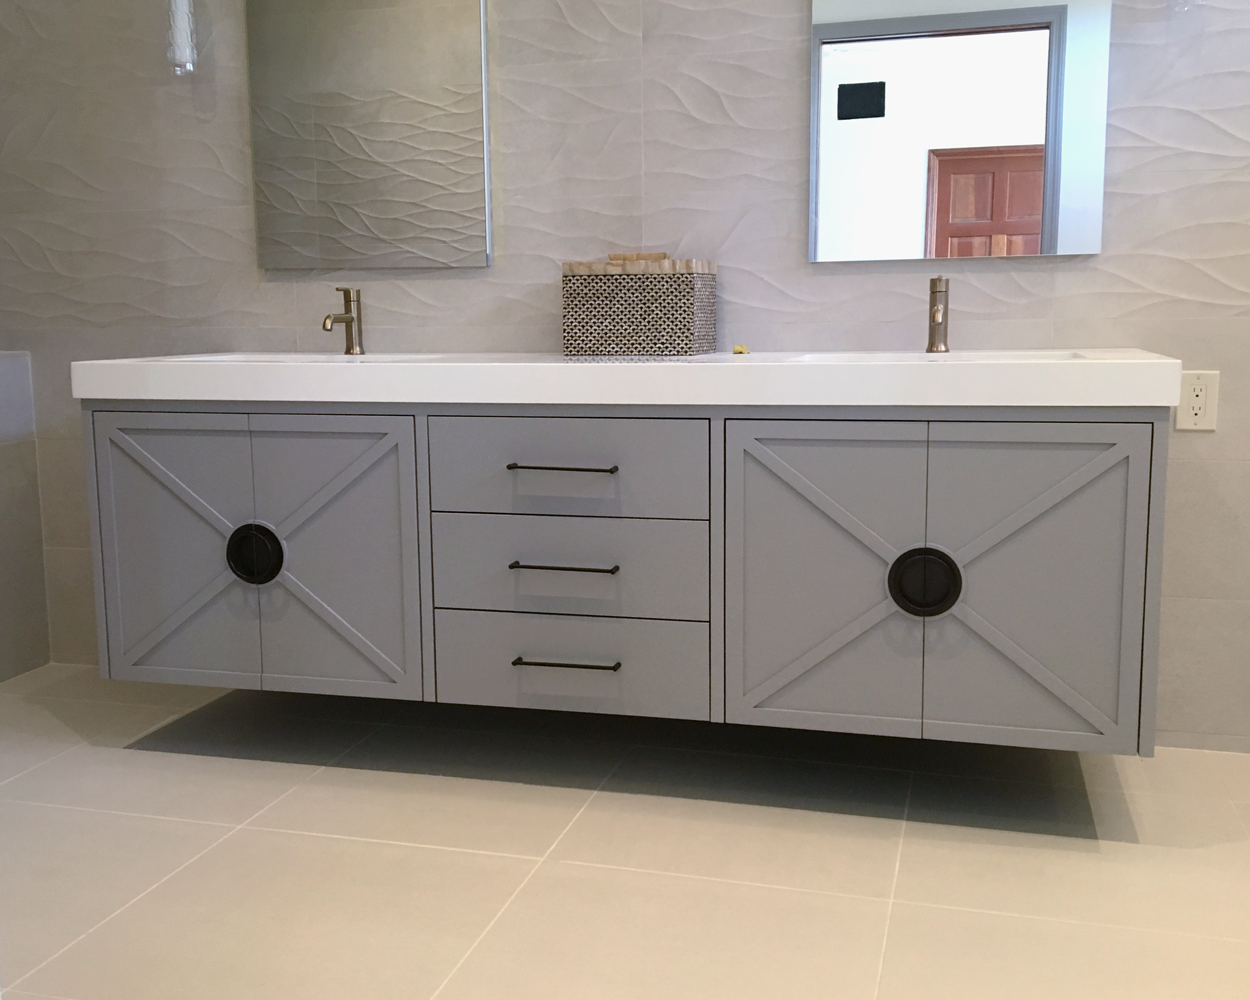 Bath Vanity & Tub Surround